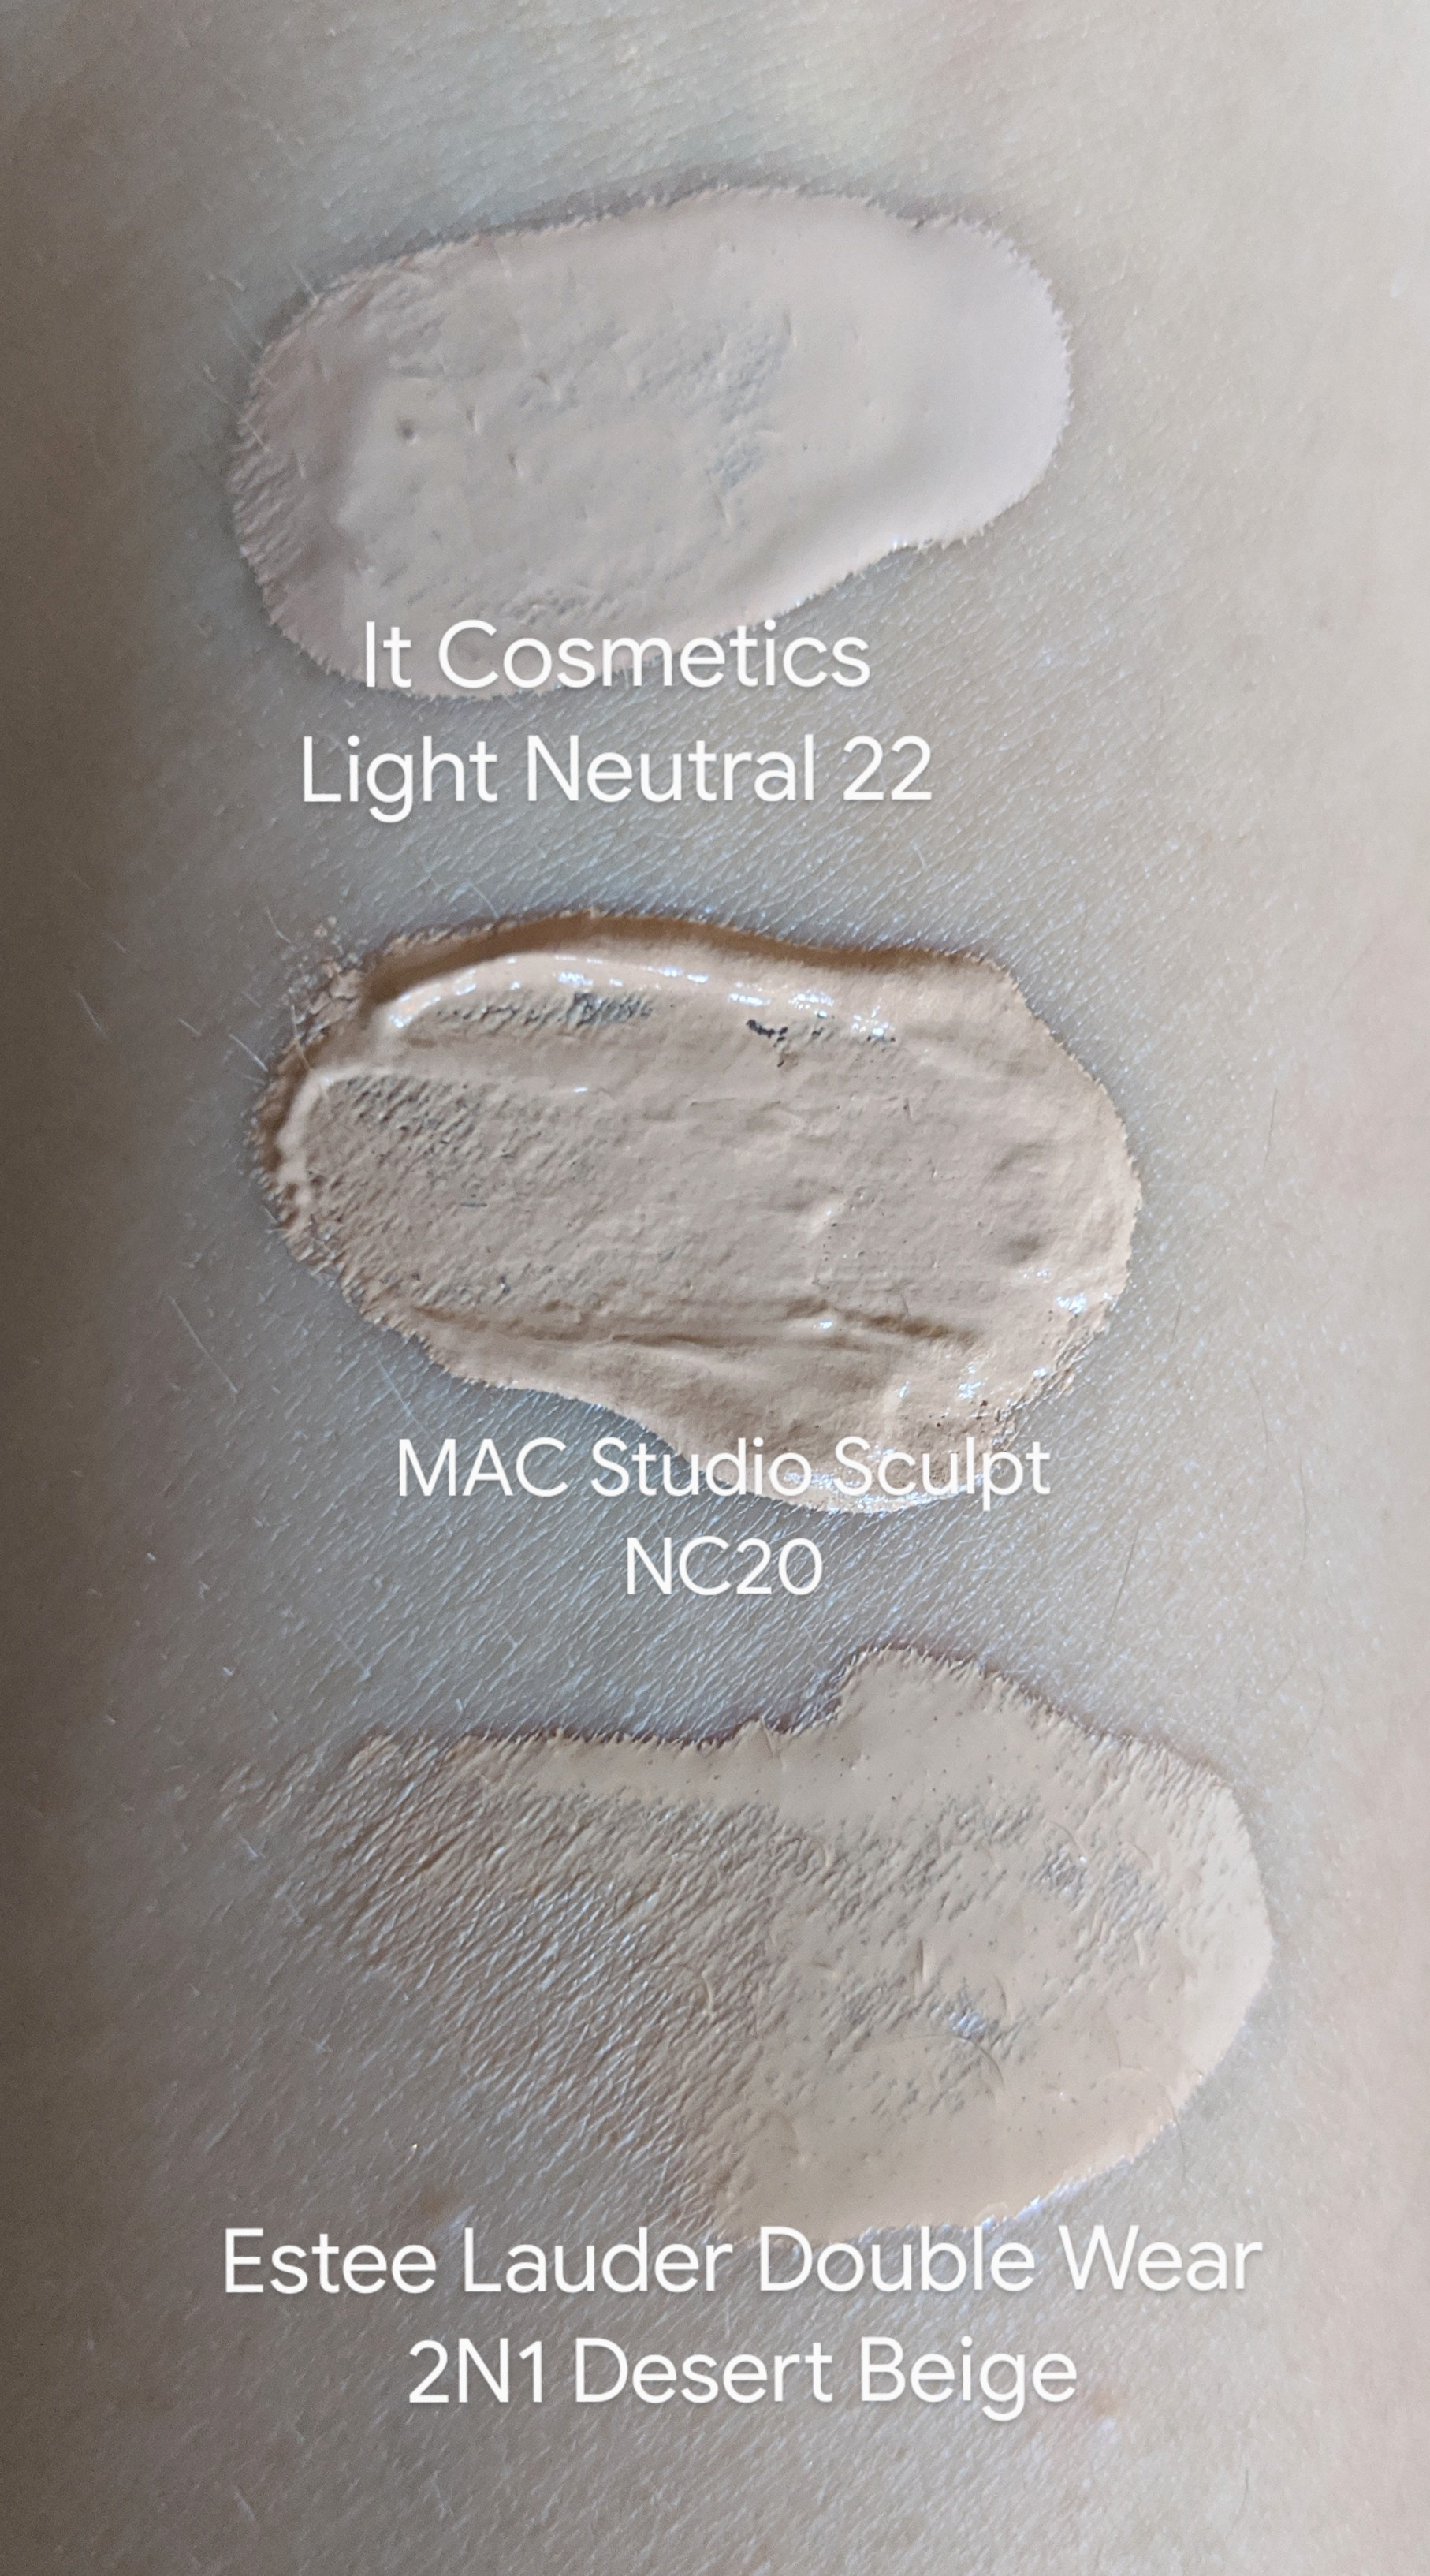 Michelle's foundation swatches from top to bottom: It Cosmetics Your Skin But Better Foundation + Skincare Light Neutral 22, MAC Studio Sculpt NC20, Estee Lauder Double Wear 2N1 Desert Beige